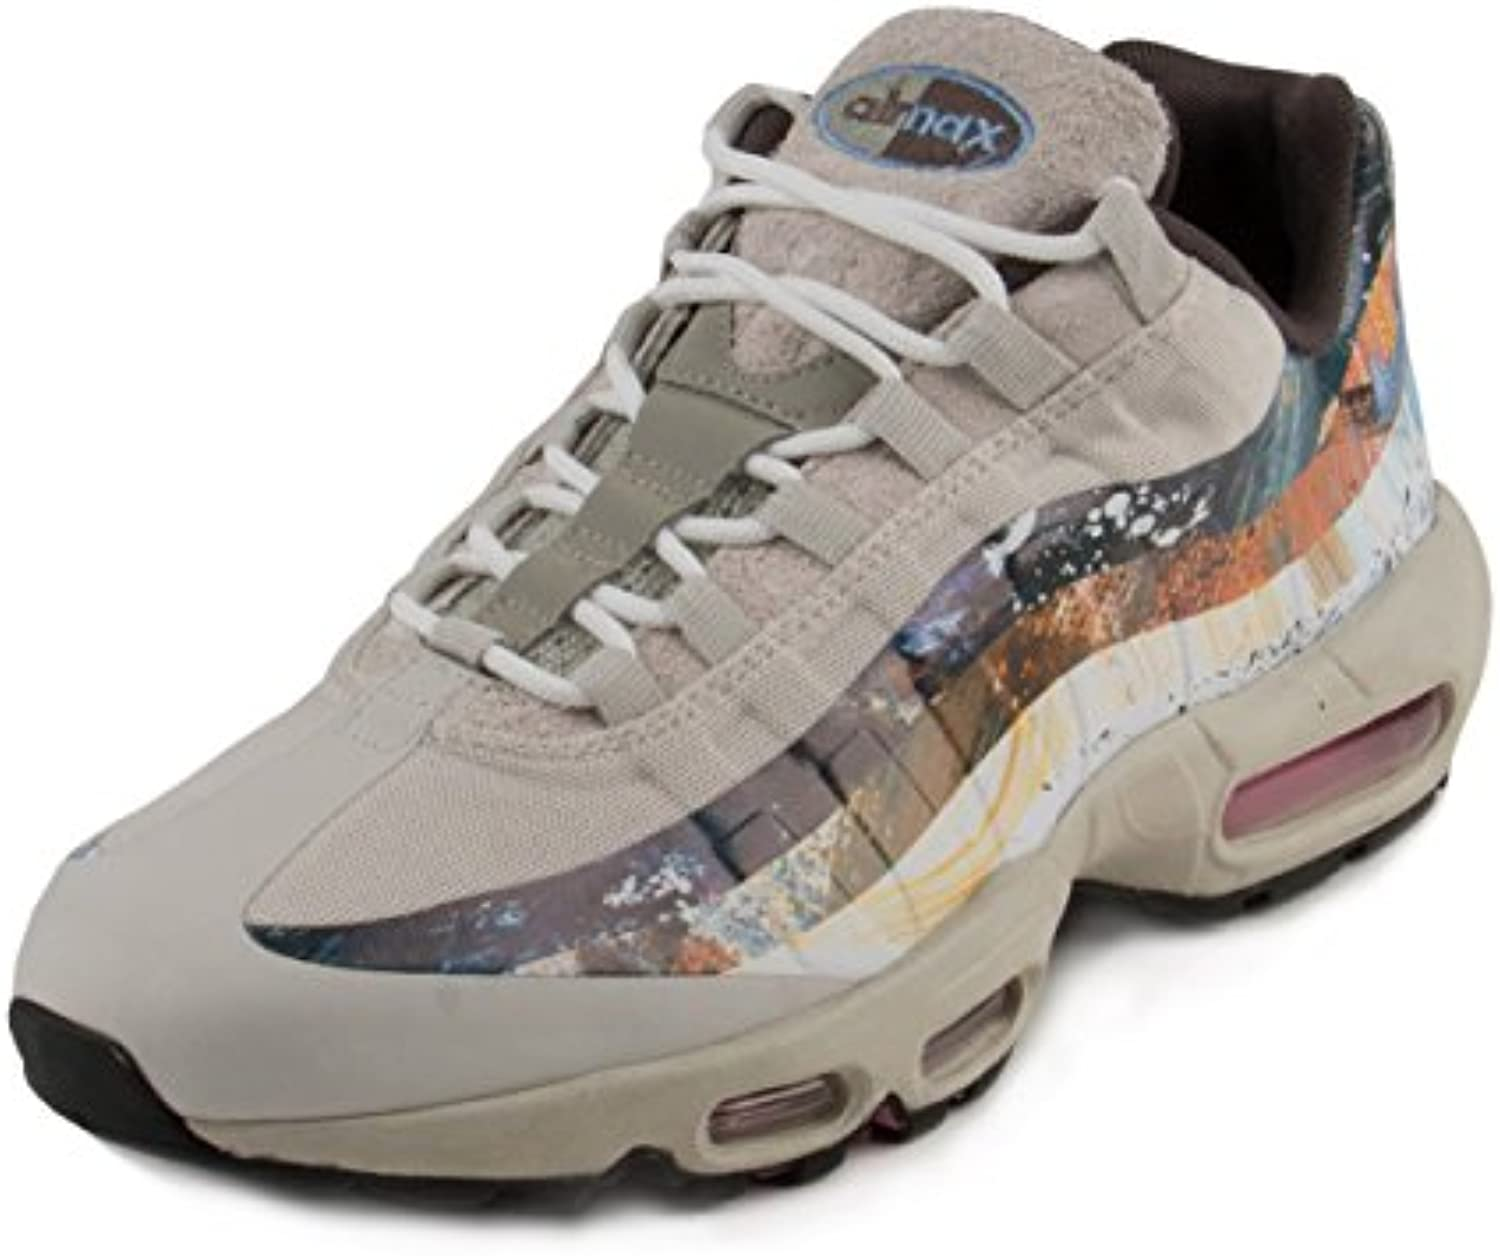 NIKE Mens Air Max 95 Dave White Stone/Thunder-Light Bone Synthetic Synthetic Bone Size 9 7d420a